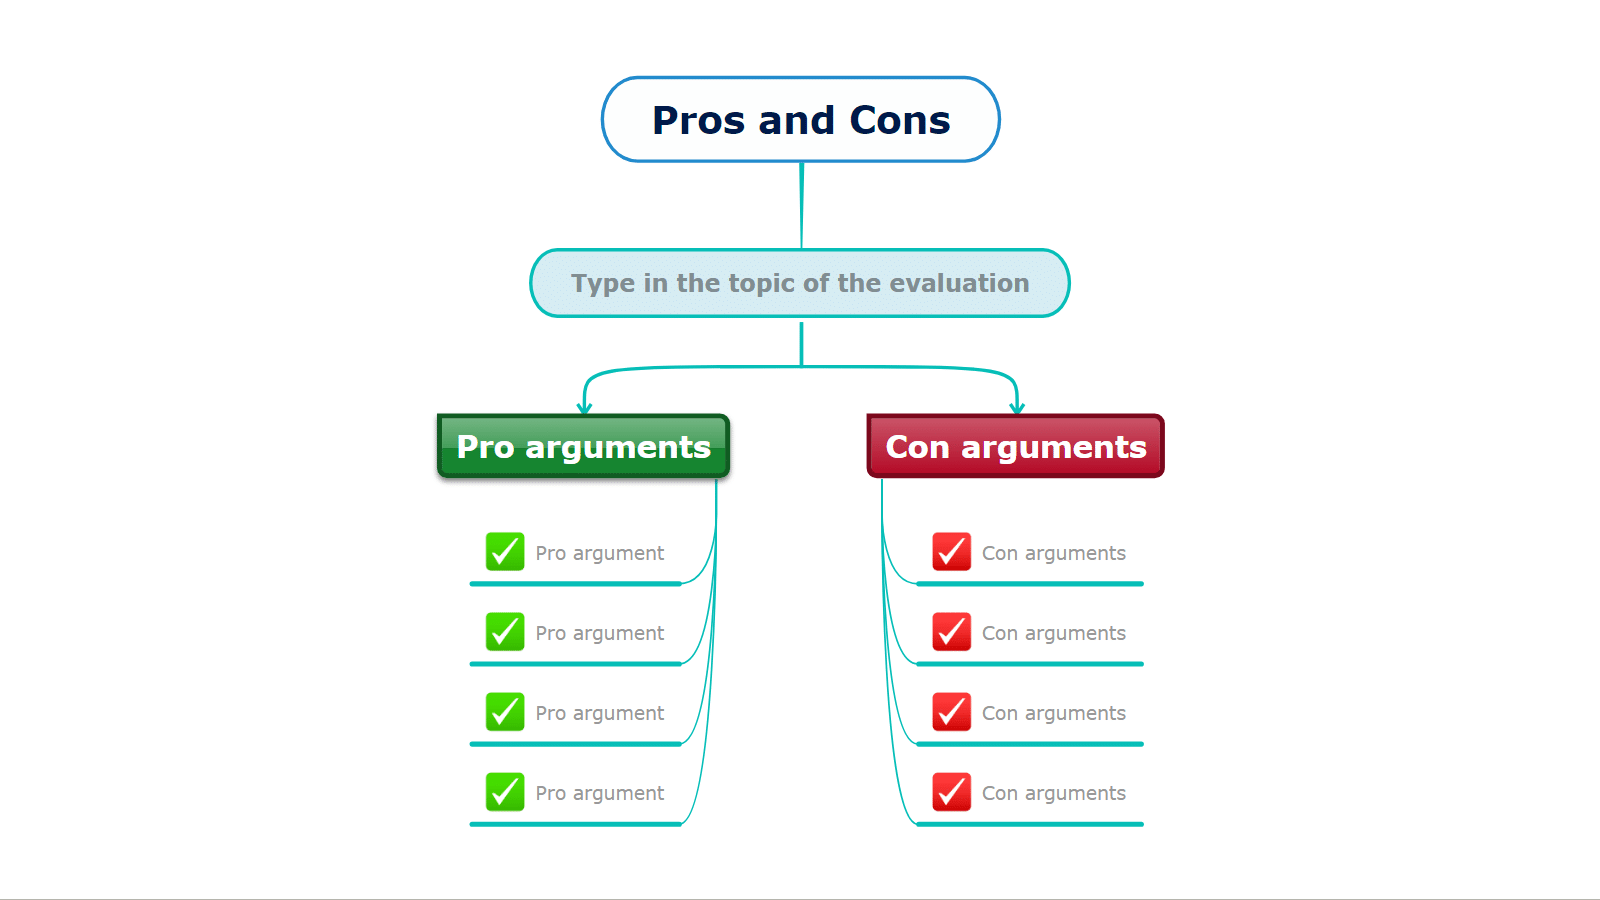 pros and cons mind map